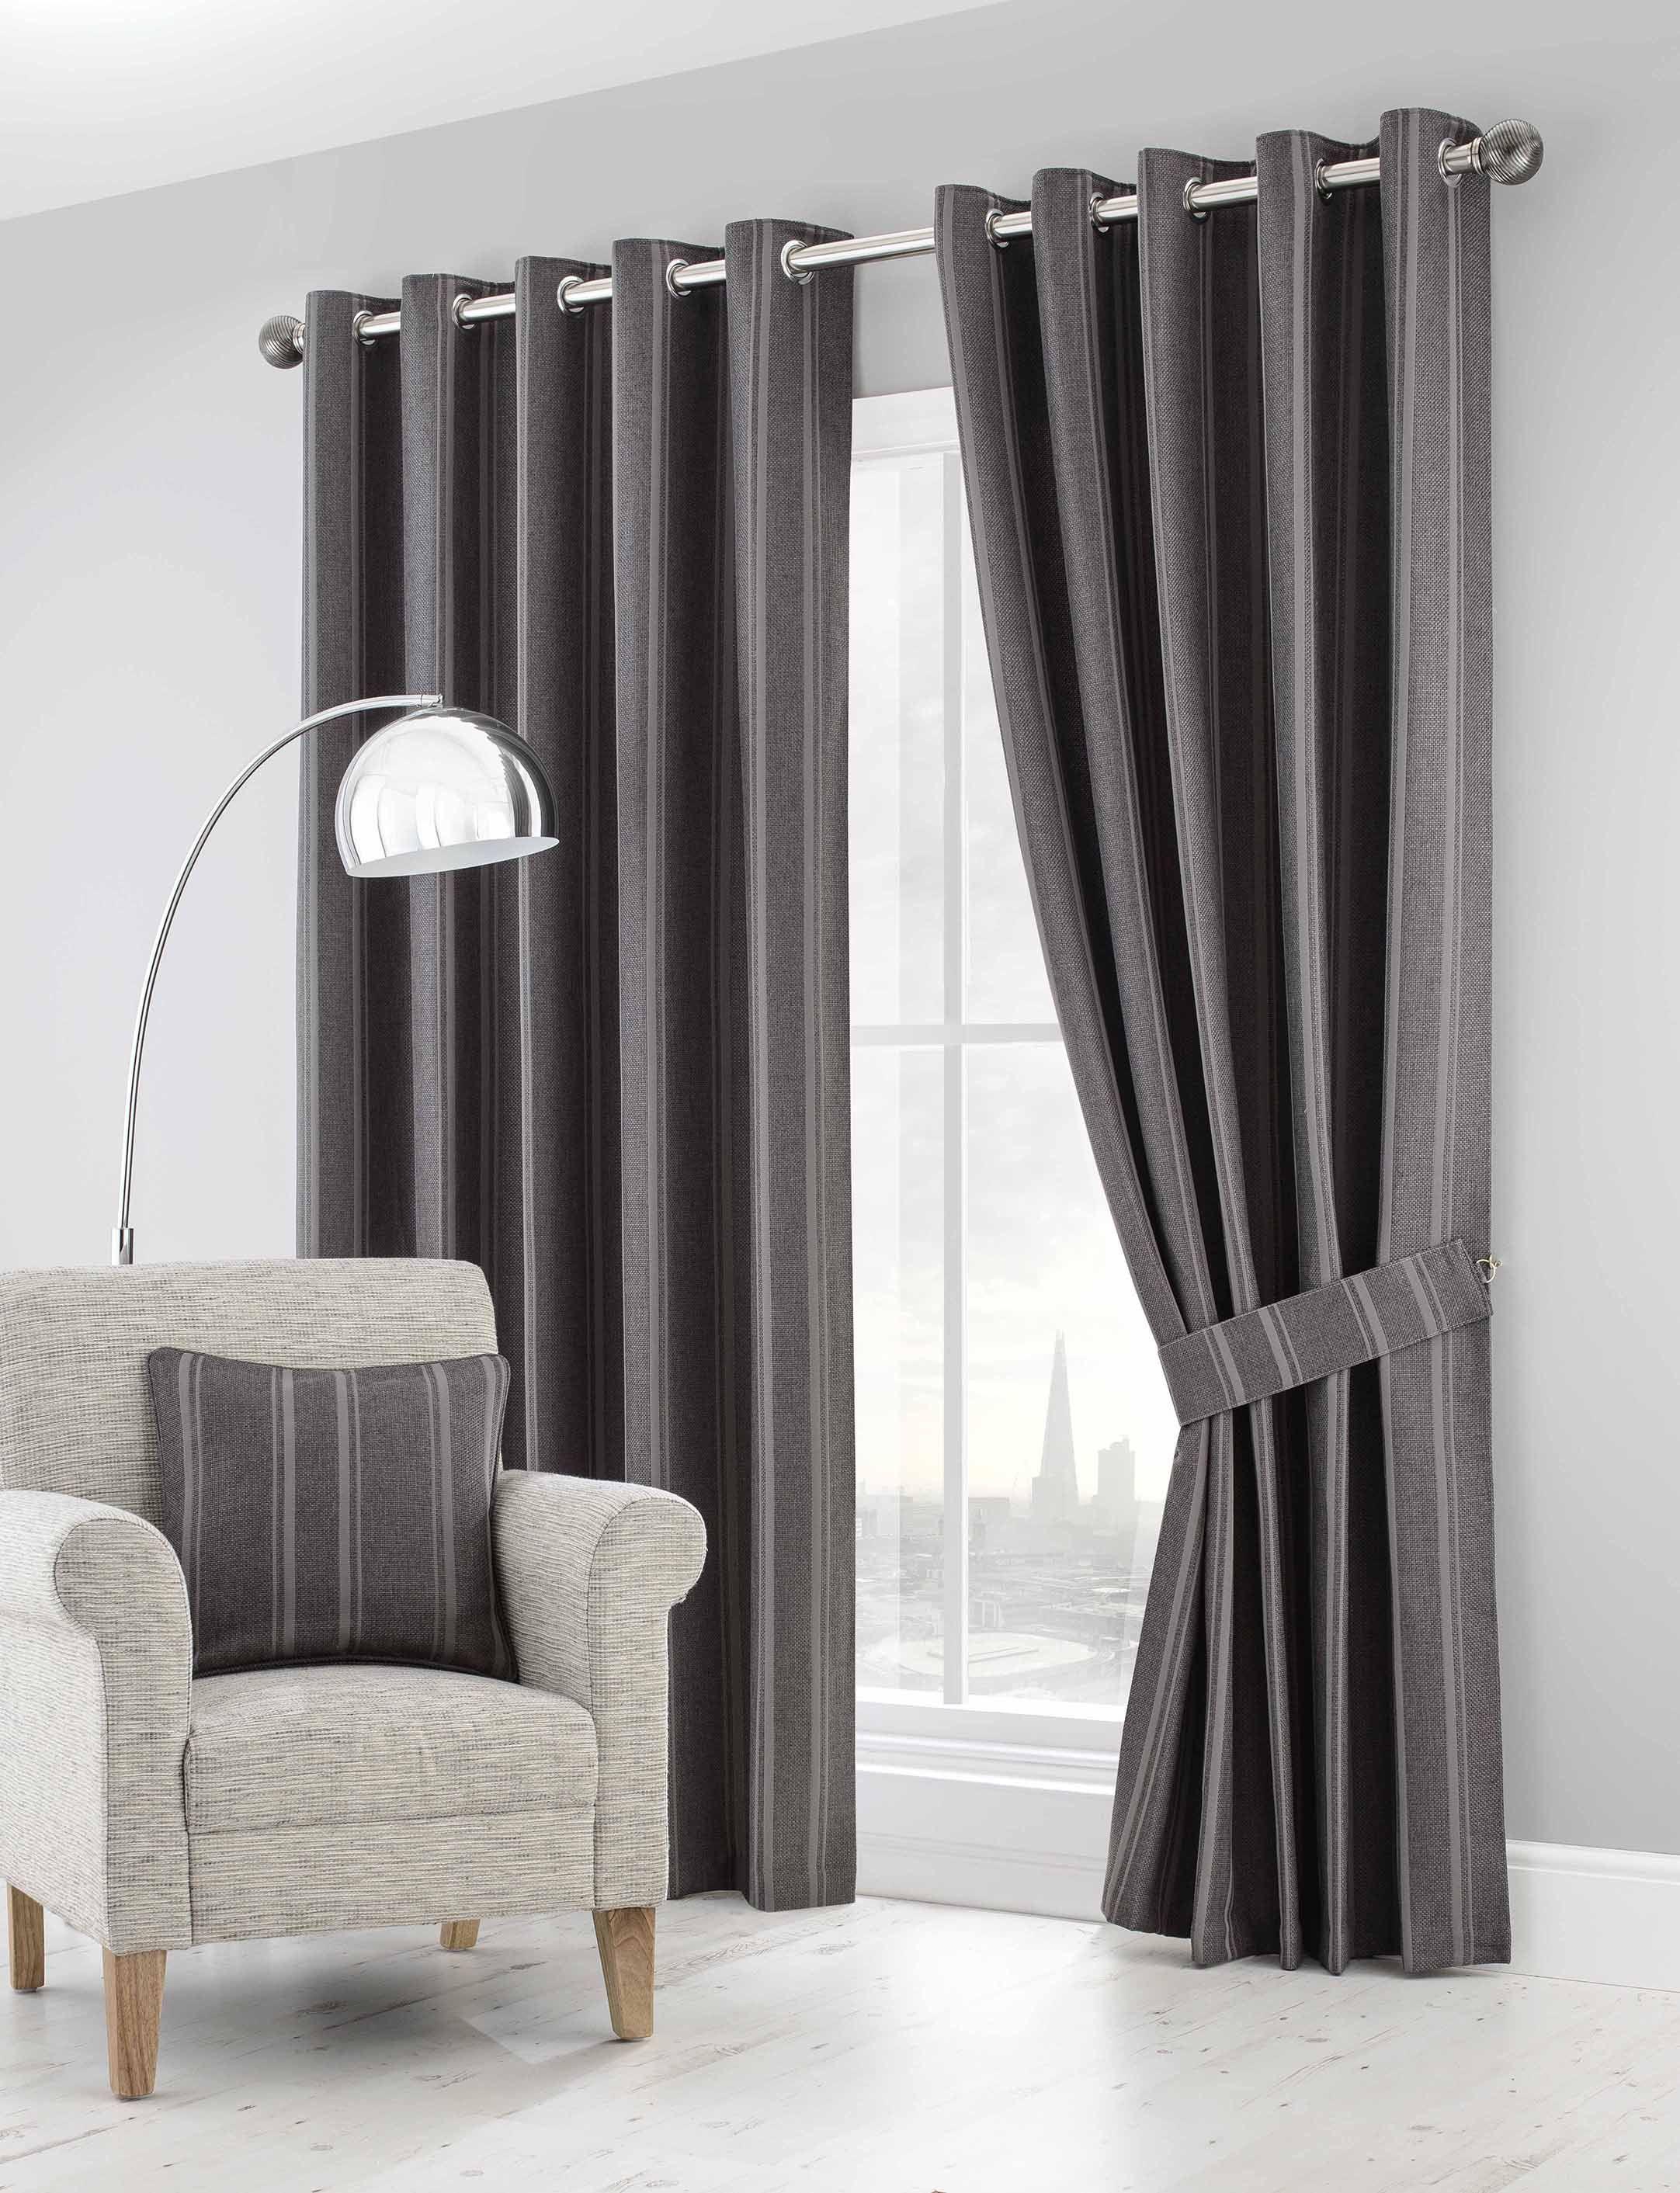 blinds curtain boat treatments gallery romans solar shades blackout roller and yacht window fortrus maritime marine curtains